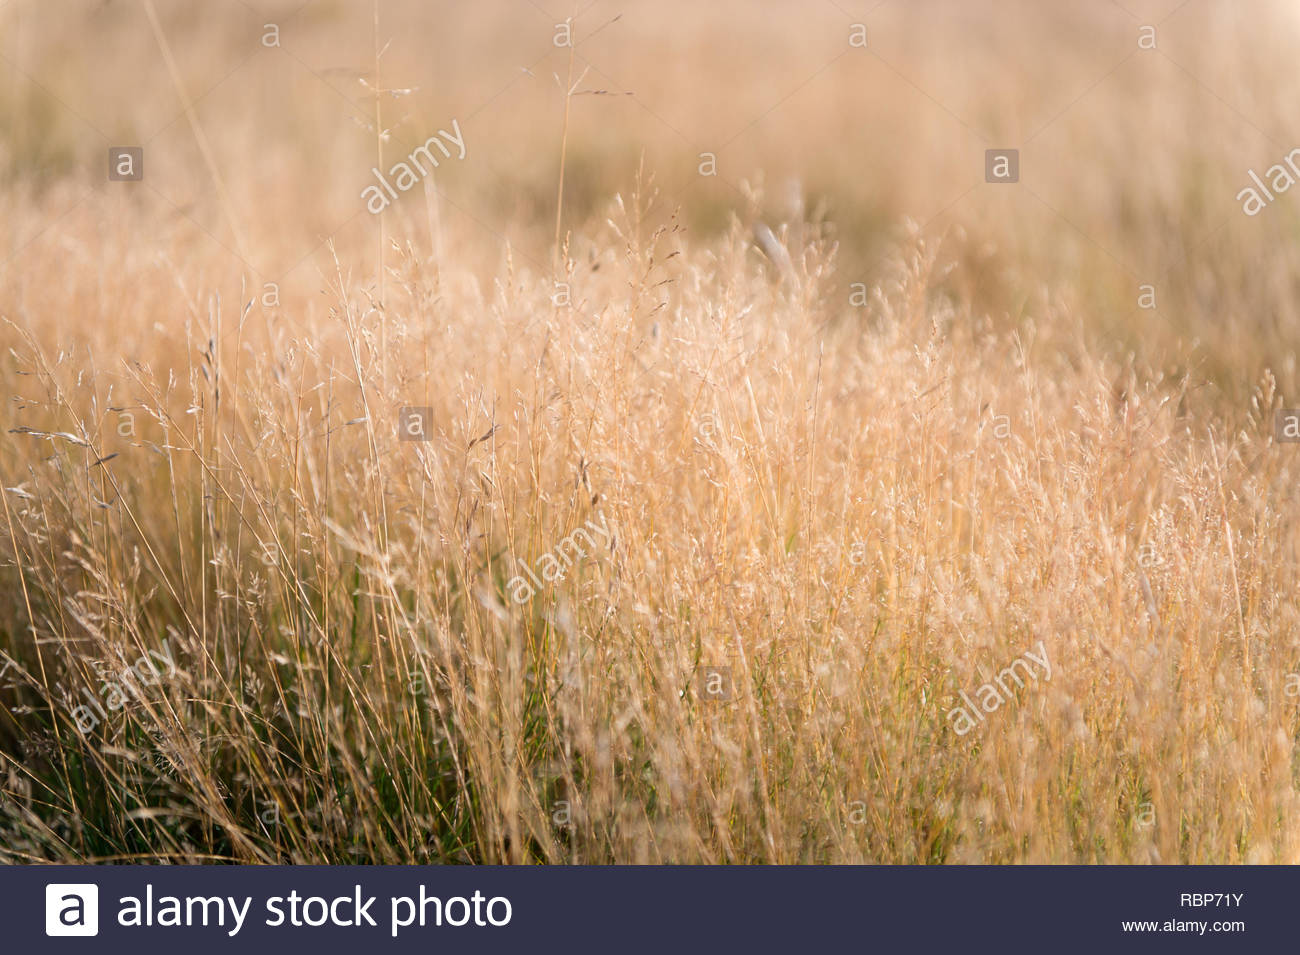 dry grass background nature ecology and harvest concept dry 1300x955